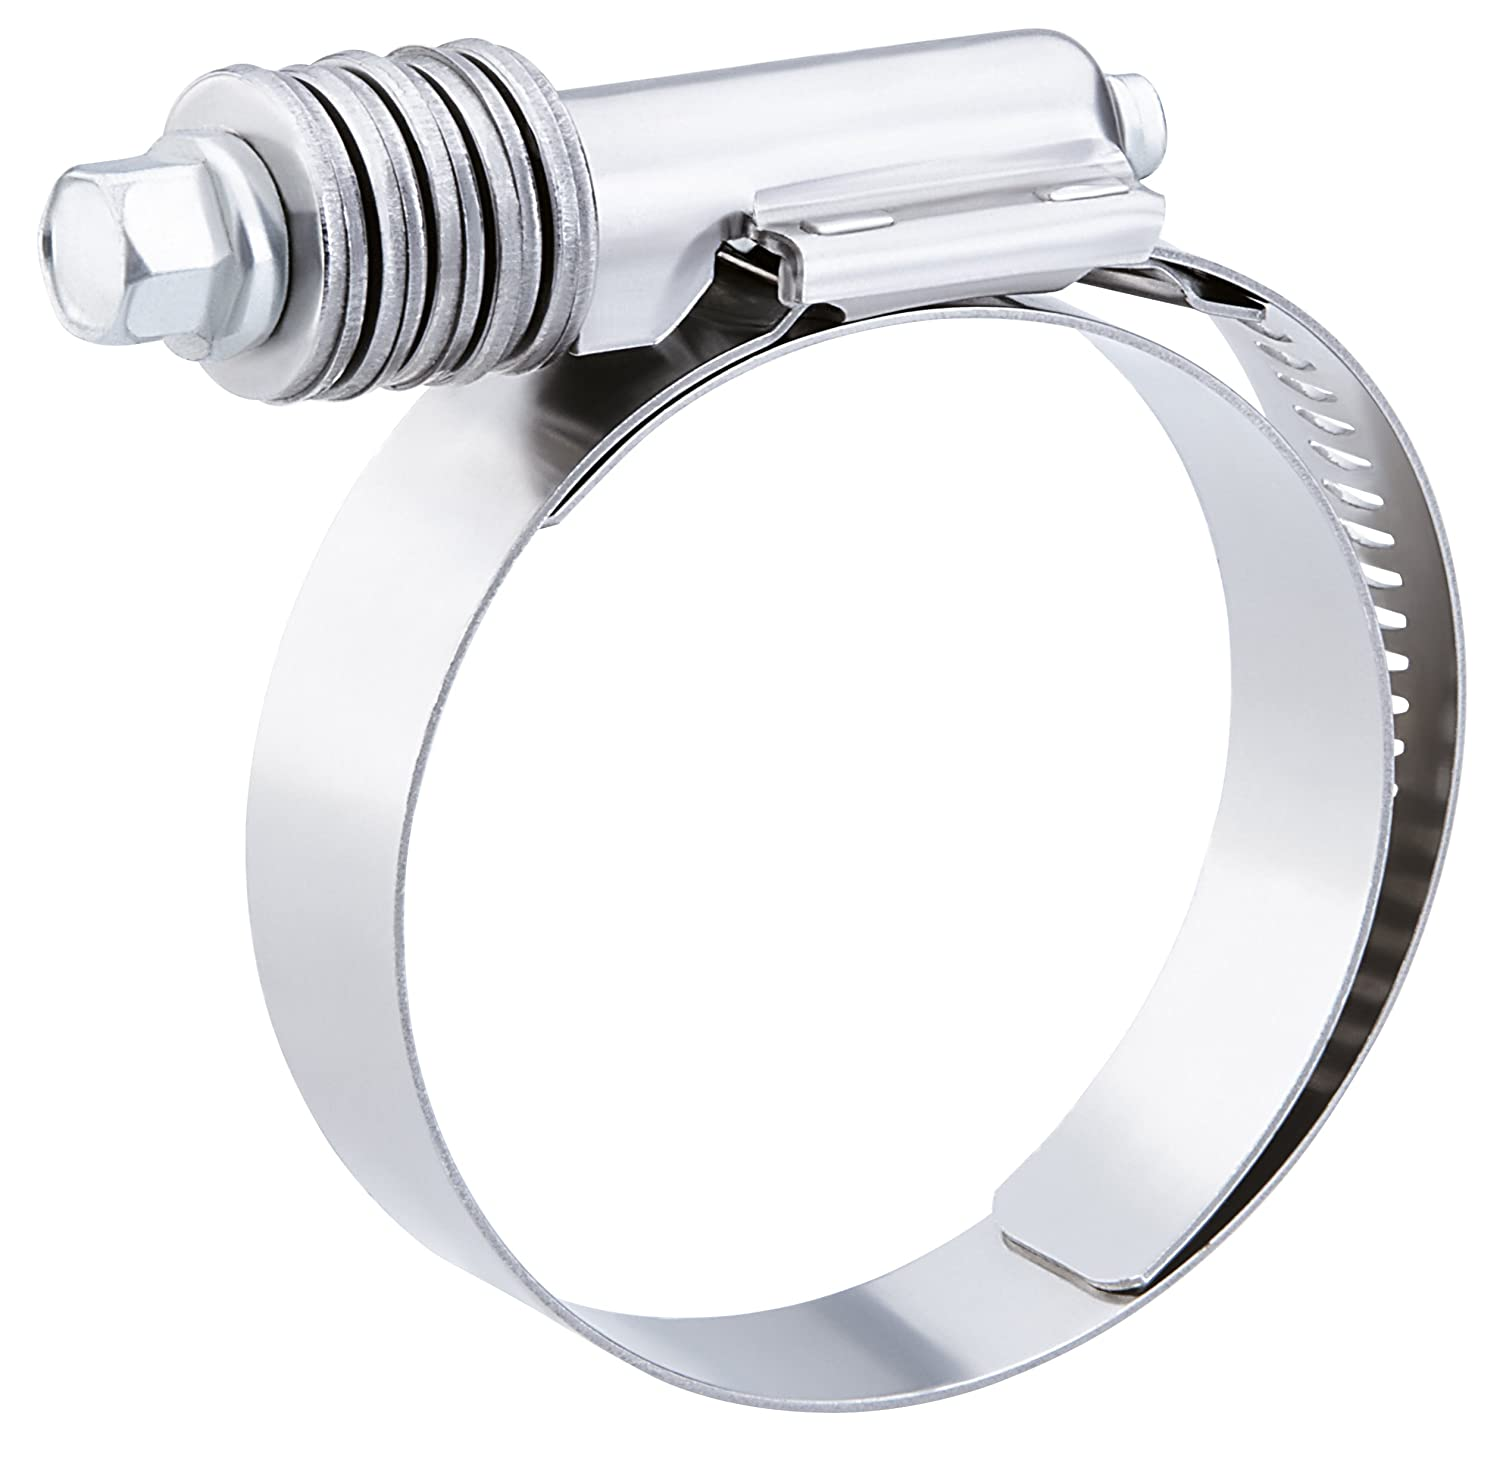 Breeze Constant Torque Stainless Steel Hose Clamp Worm Drive SAE